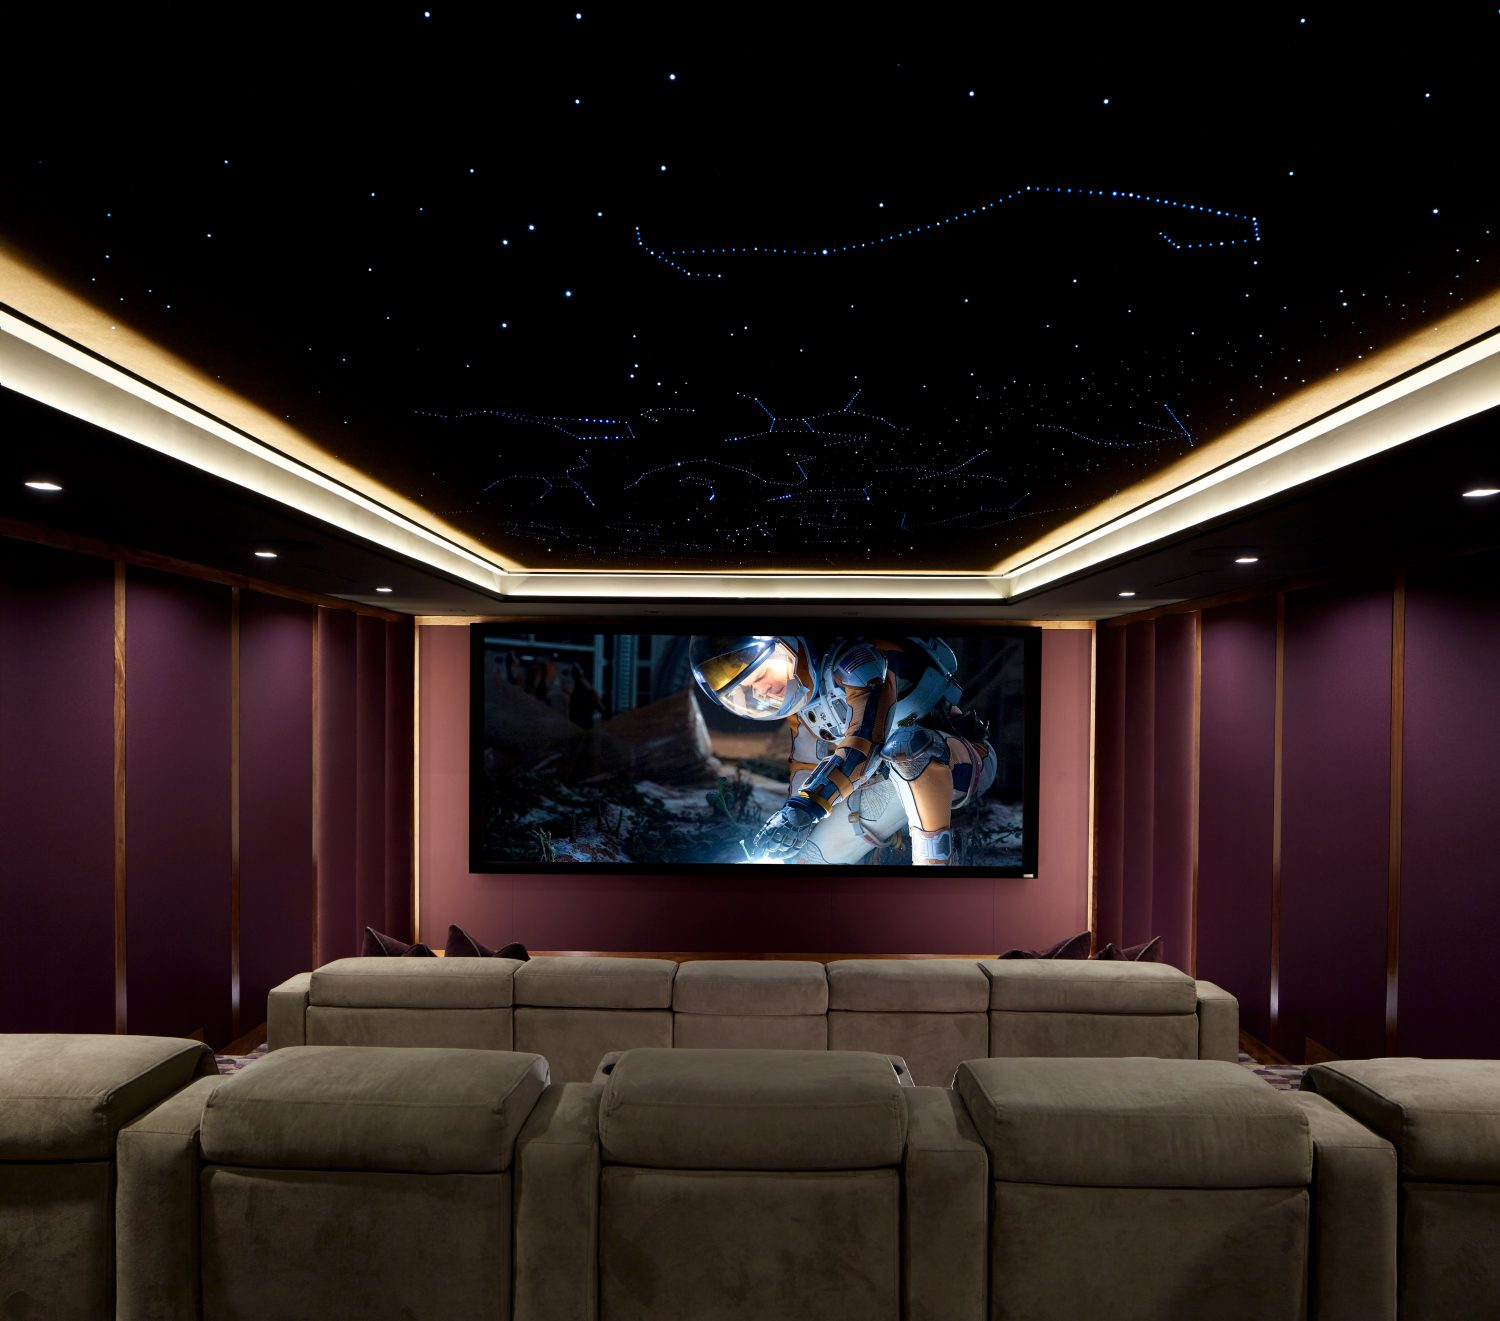 ELAN-Controlled Dolby Atmos Home Theatre Boasts Starlit